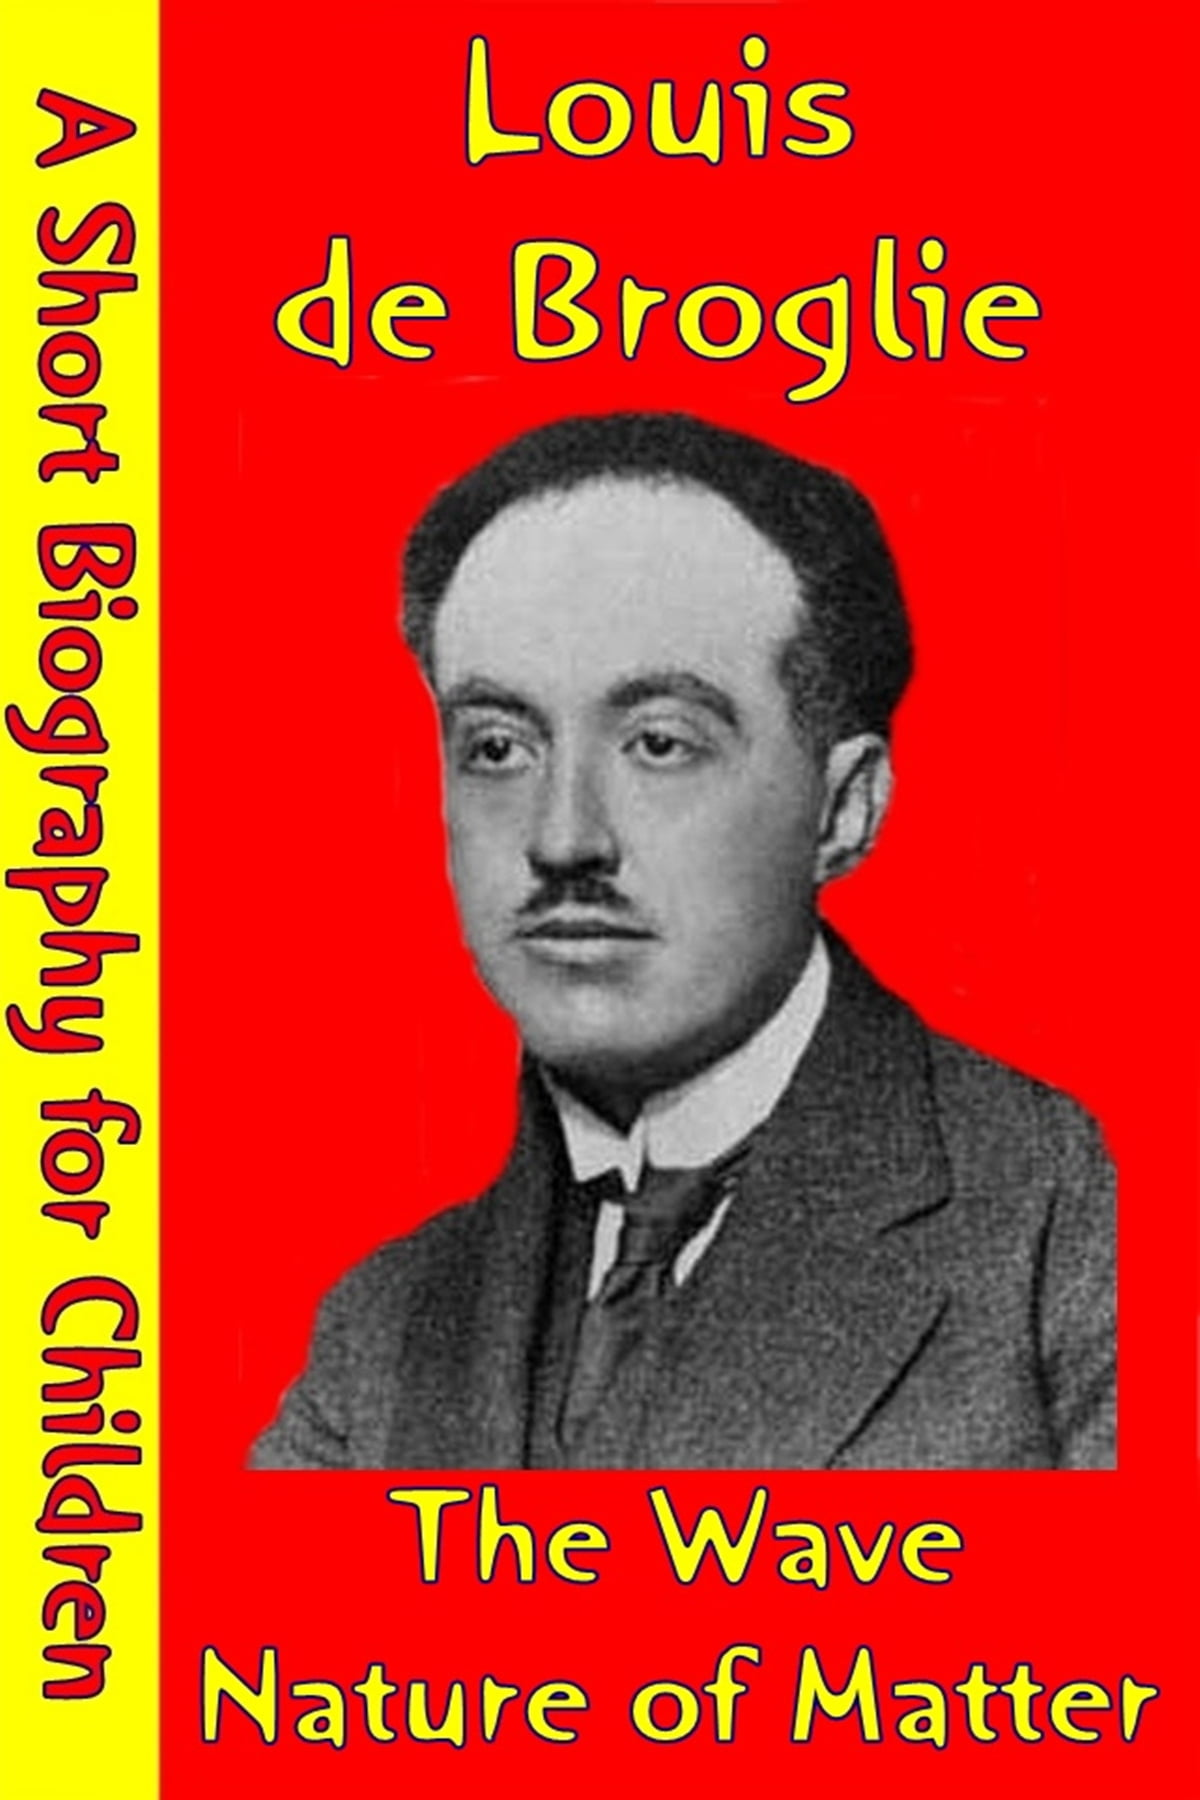 de broglie shortest thesis I have compiled a very solid list of the 12 most famous phd theses (plural of thesis) de broglie's thesis is 70 pages long, which i believe is a short space to.